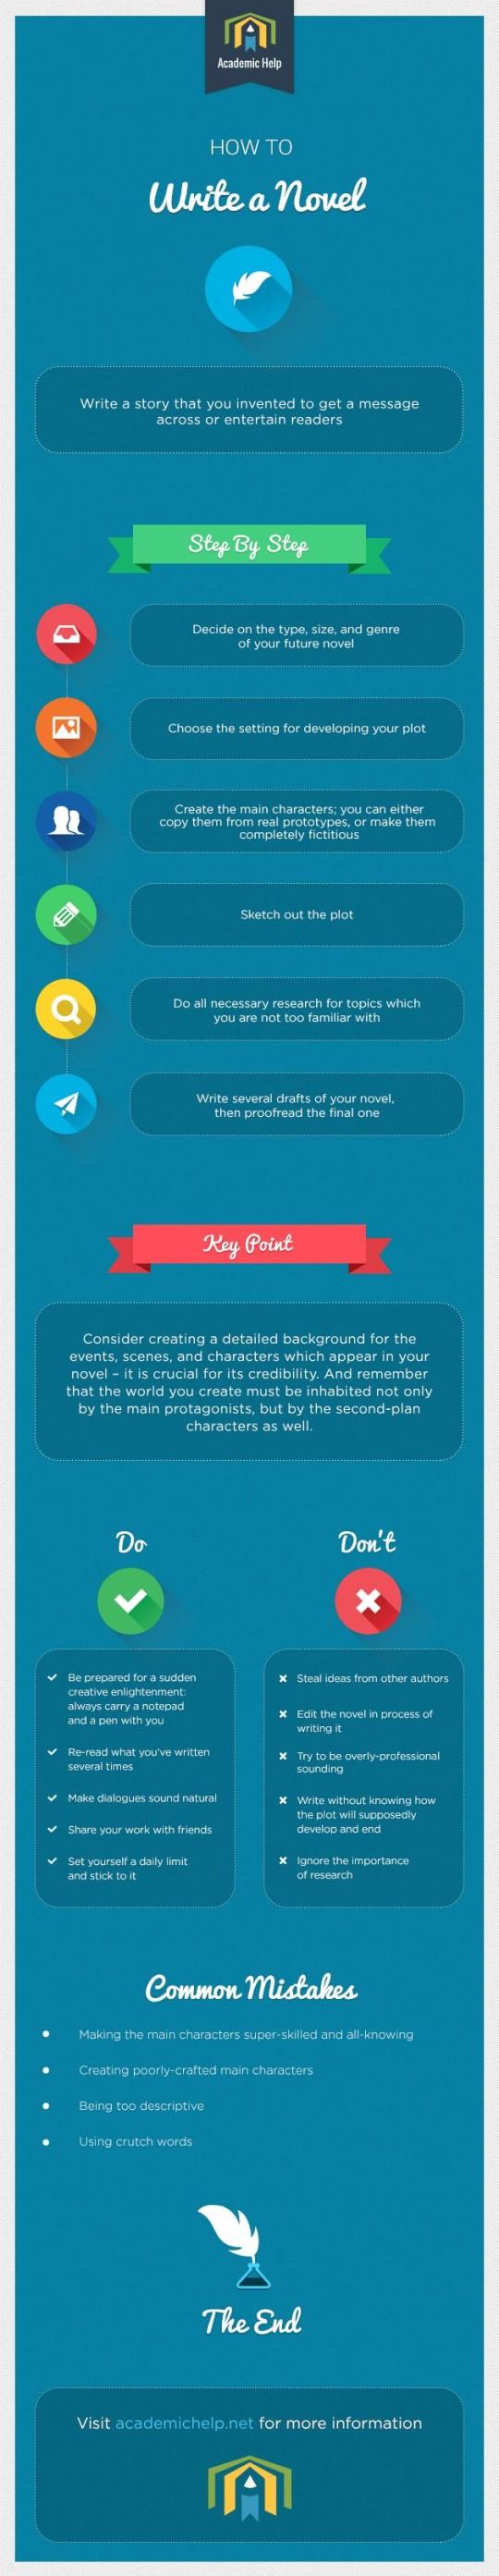 How to write a novel #infographic